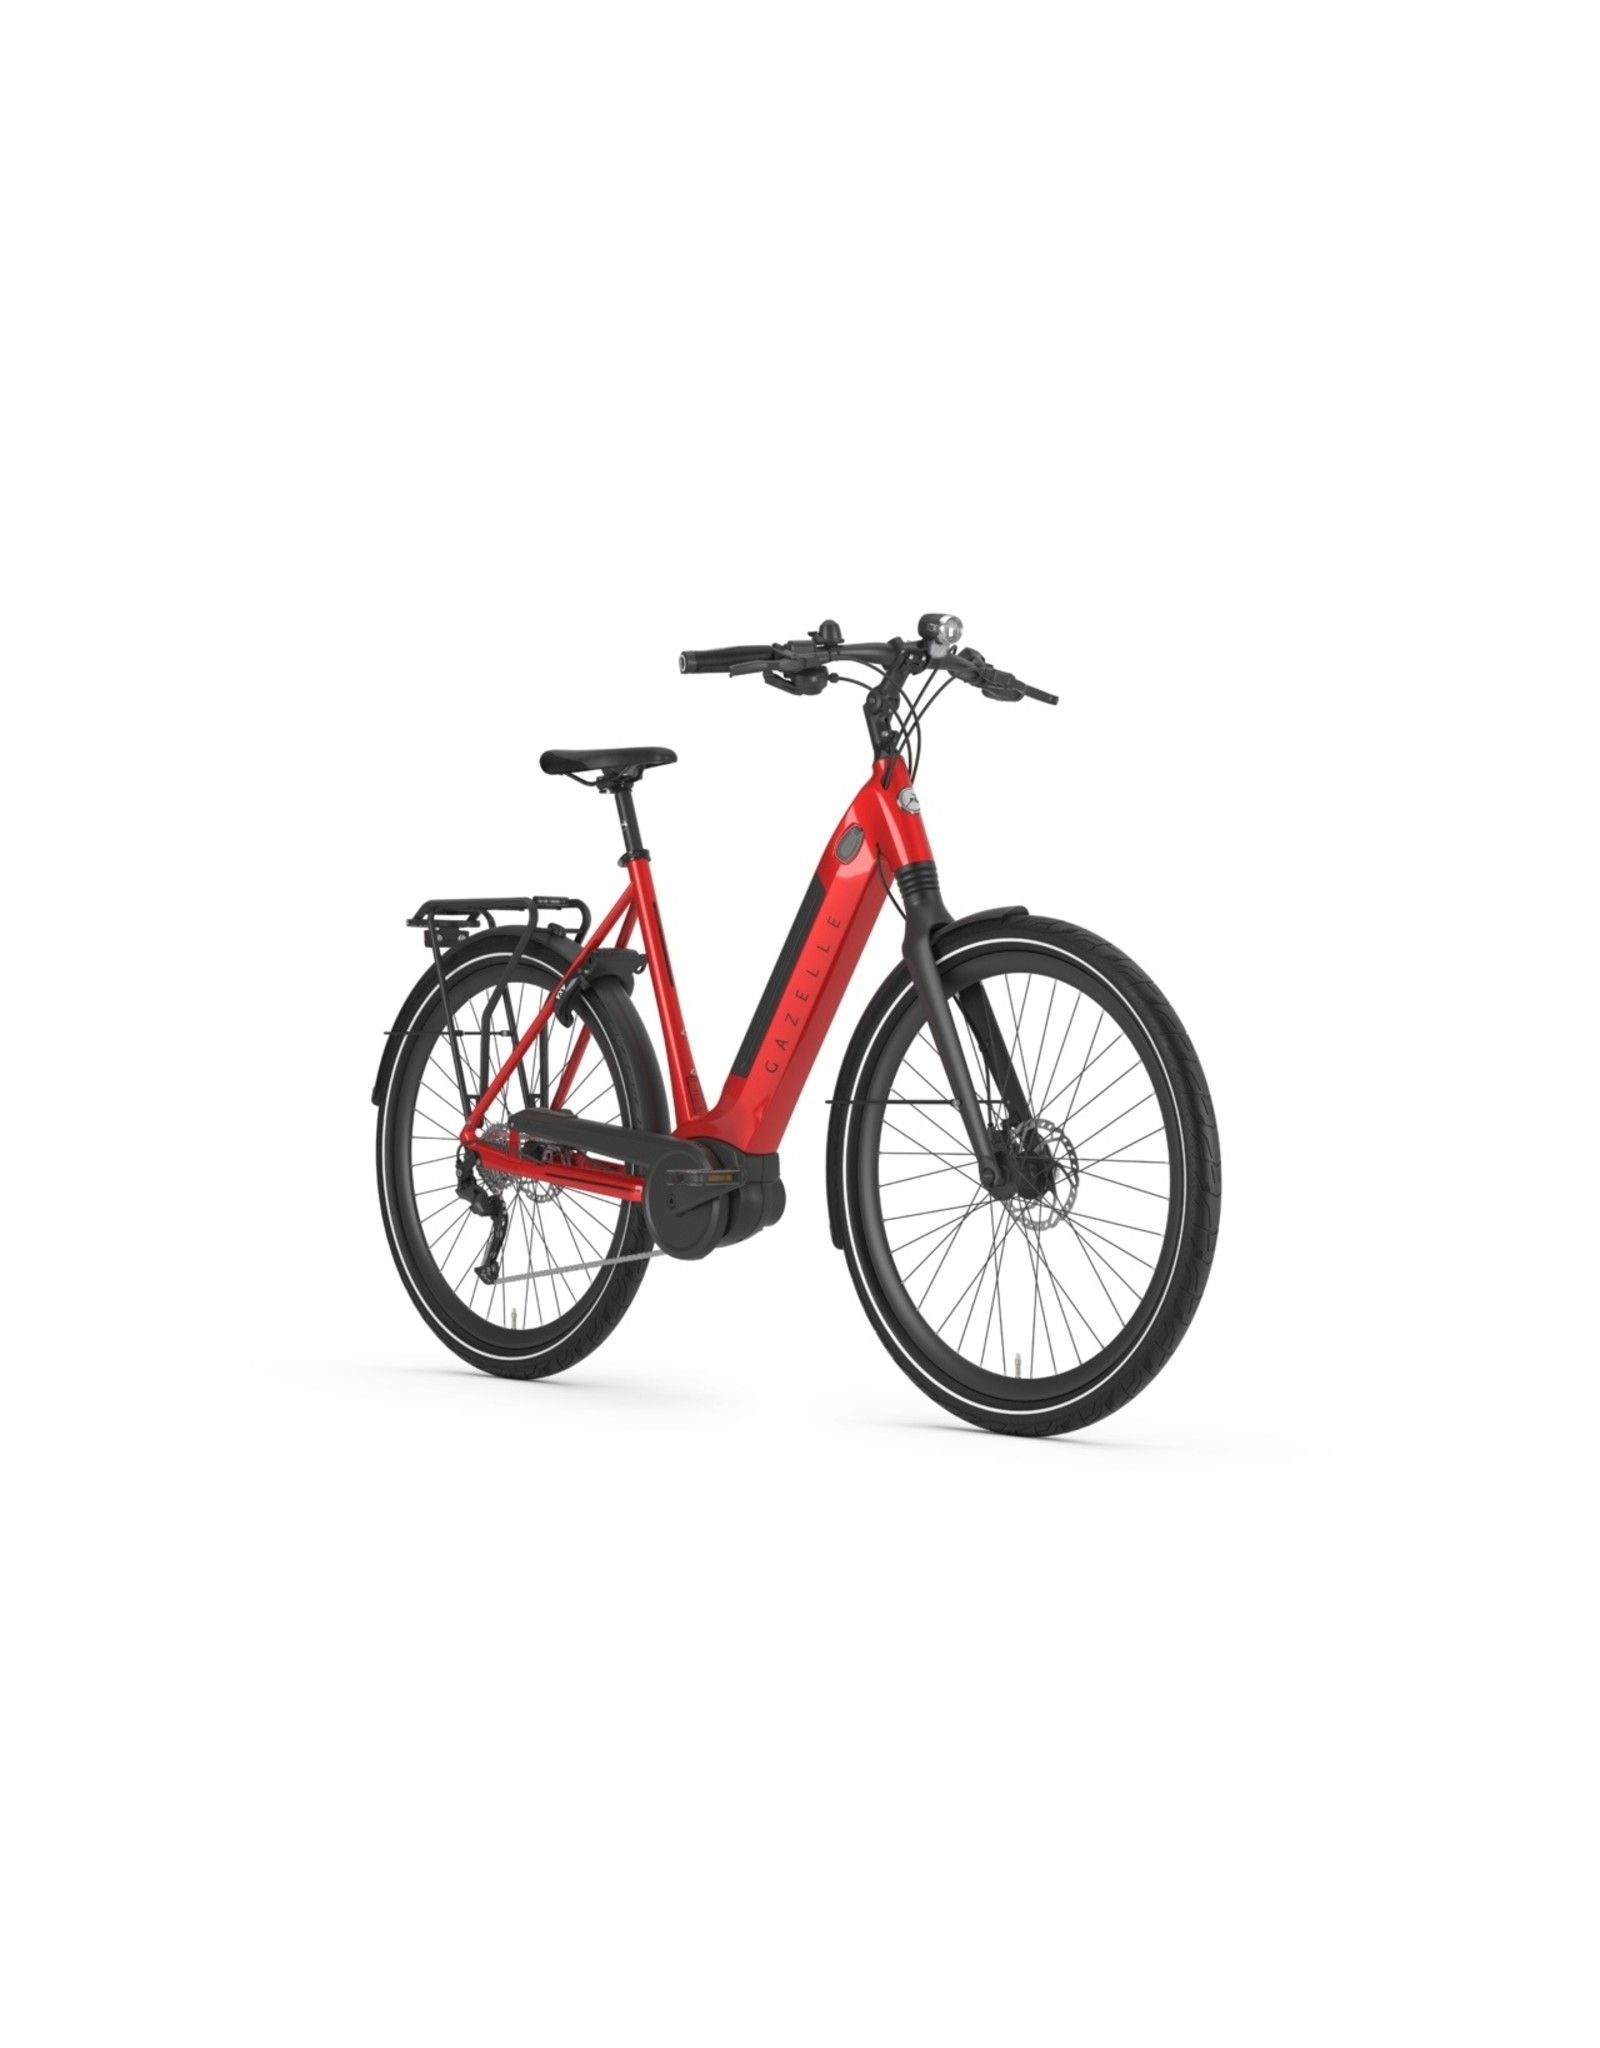 GAZELLE GAZELLE ULTIMATE T10 LOW-STEP E-BIKE RED